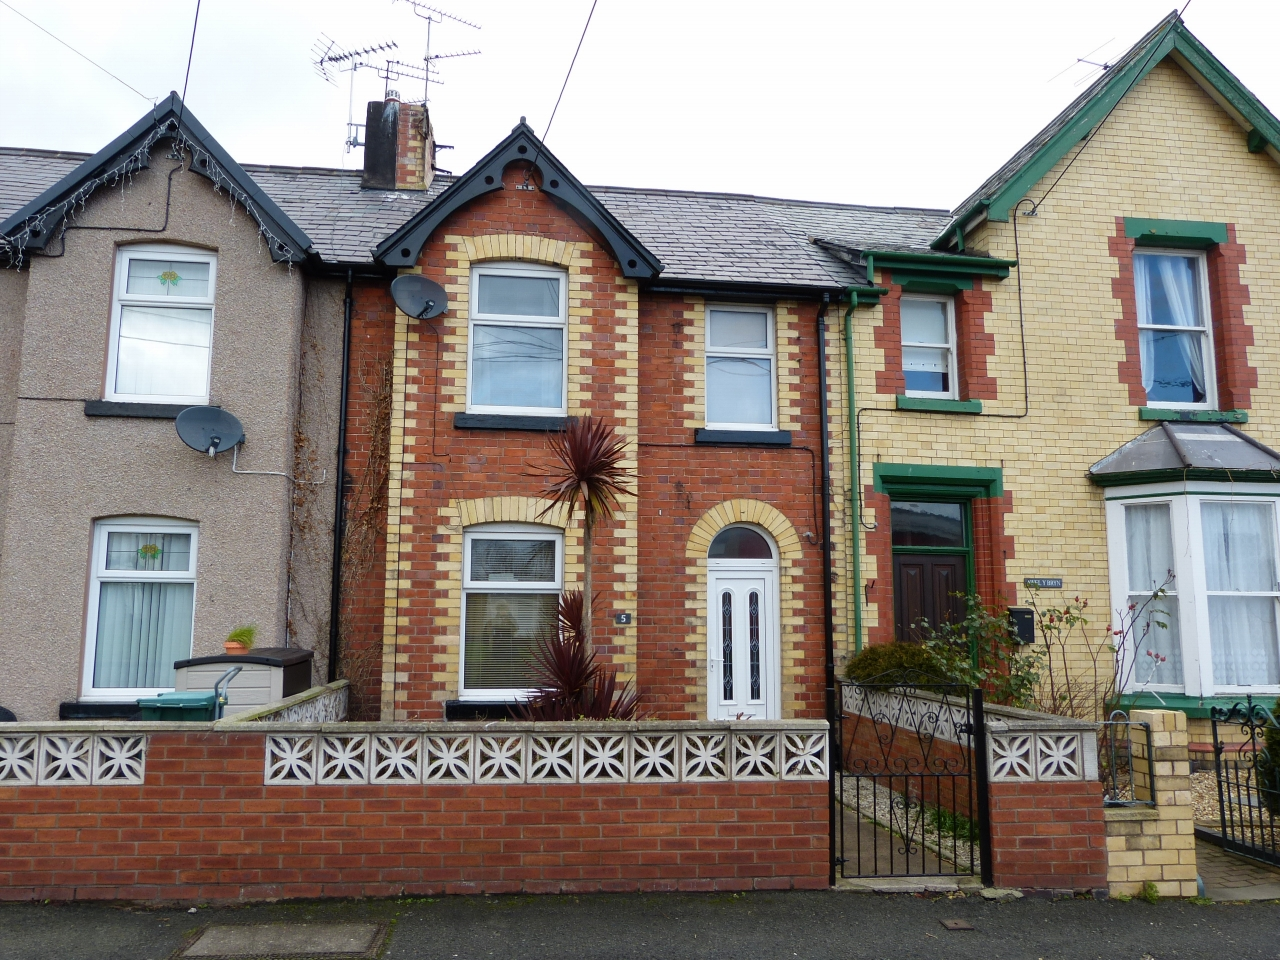 3 bedroom mid terraced house SSTC in Abergele - Photograph 1